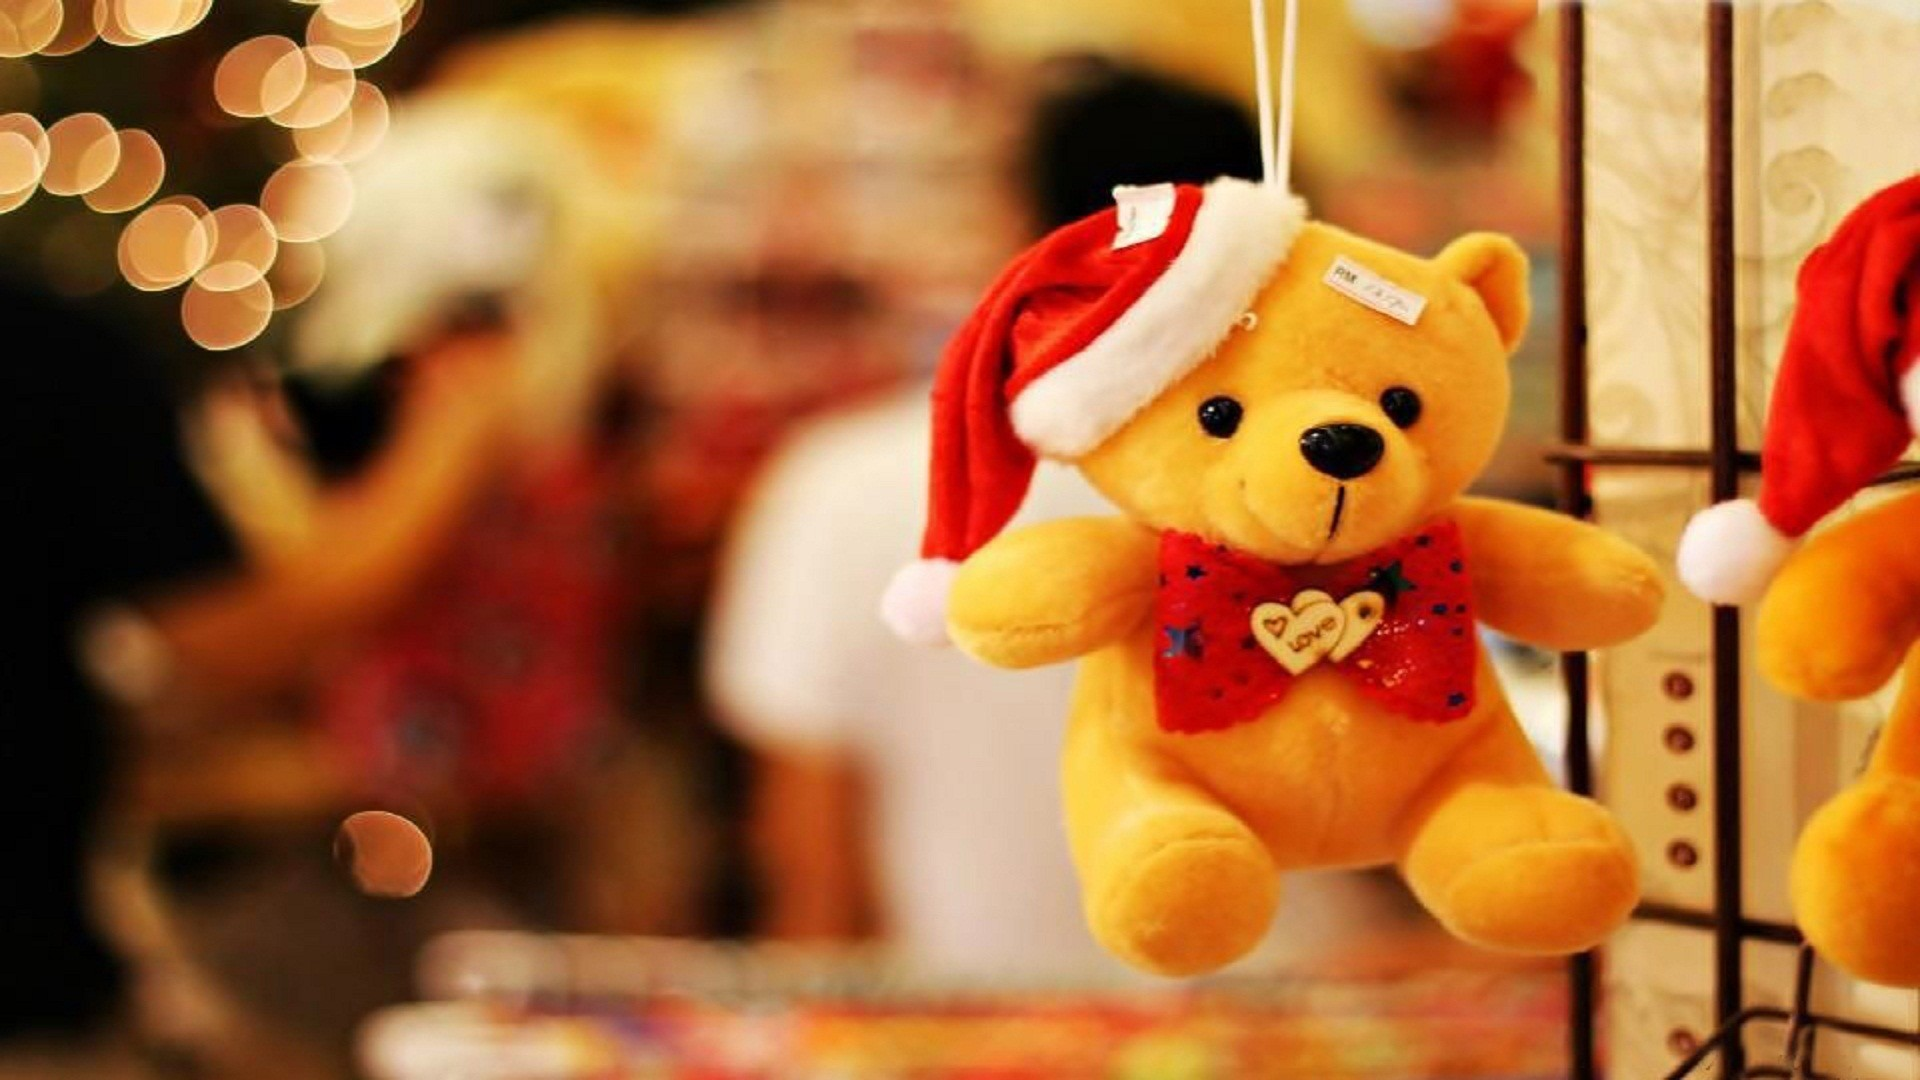 Christmas Teddy Bear Wallpaper: Cute Teddy Bears Wallpapers (59+ Images